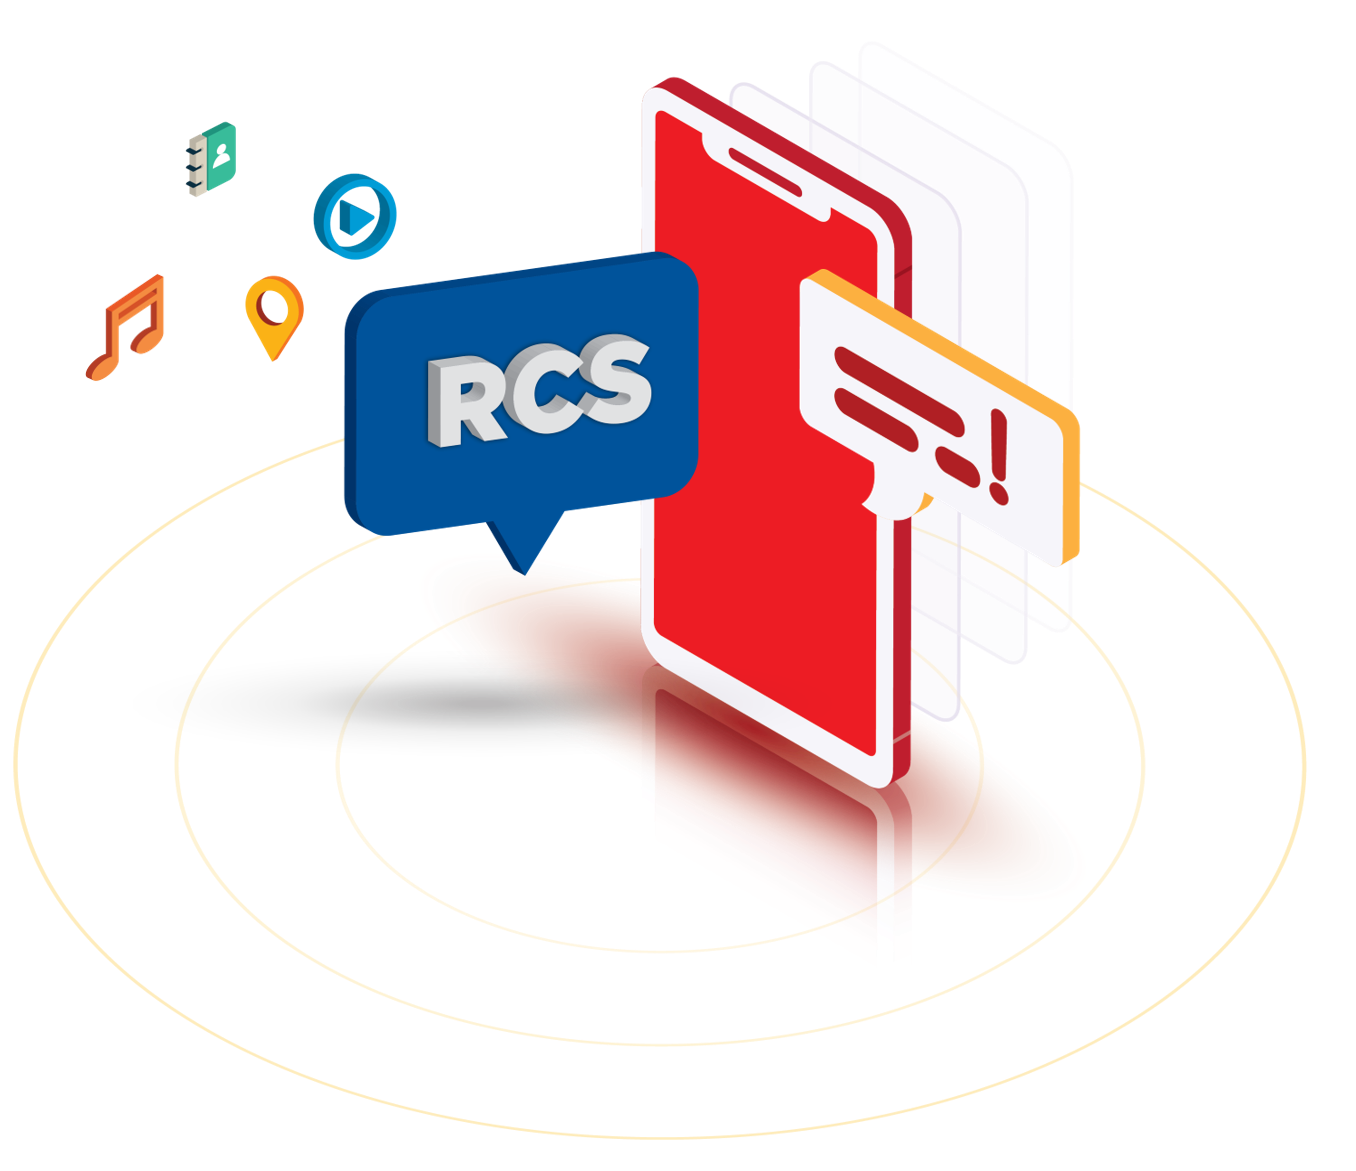 Cequens Officially Joins Google's Early Access Program for RCS Business Messaging